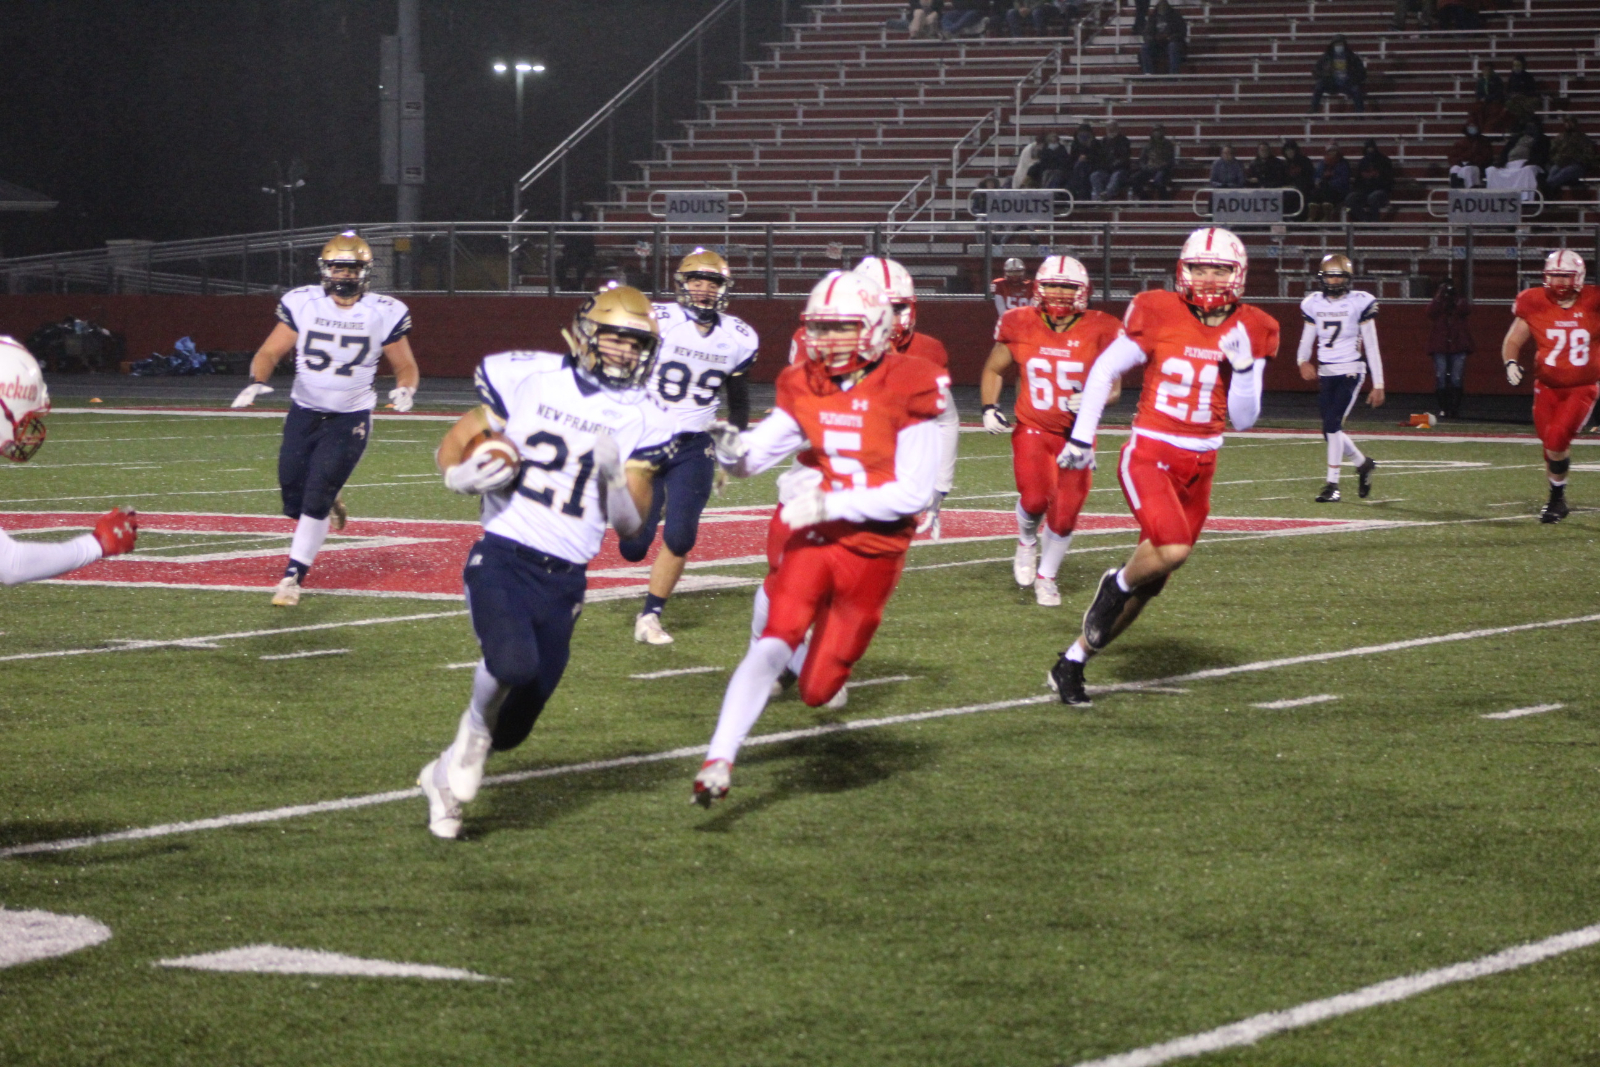 Varsity Football @ IHSAA Sectional vs. Plymouth 10/23/20  (Photo Gallery)